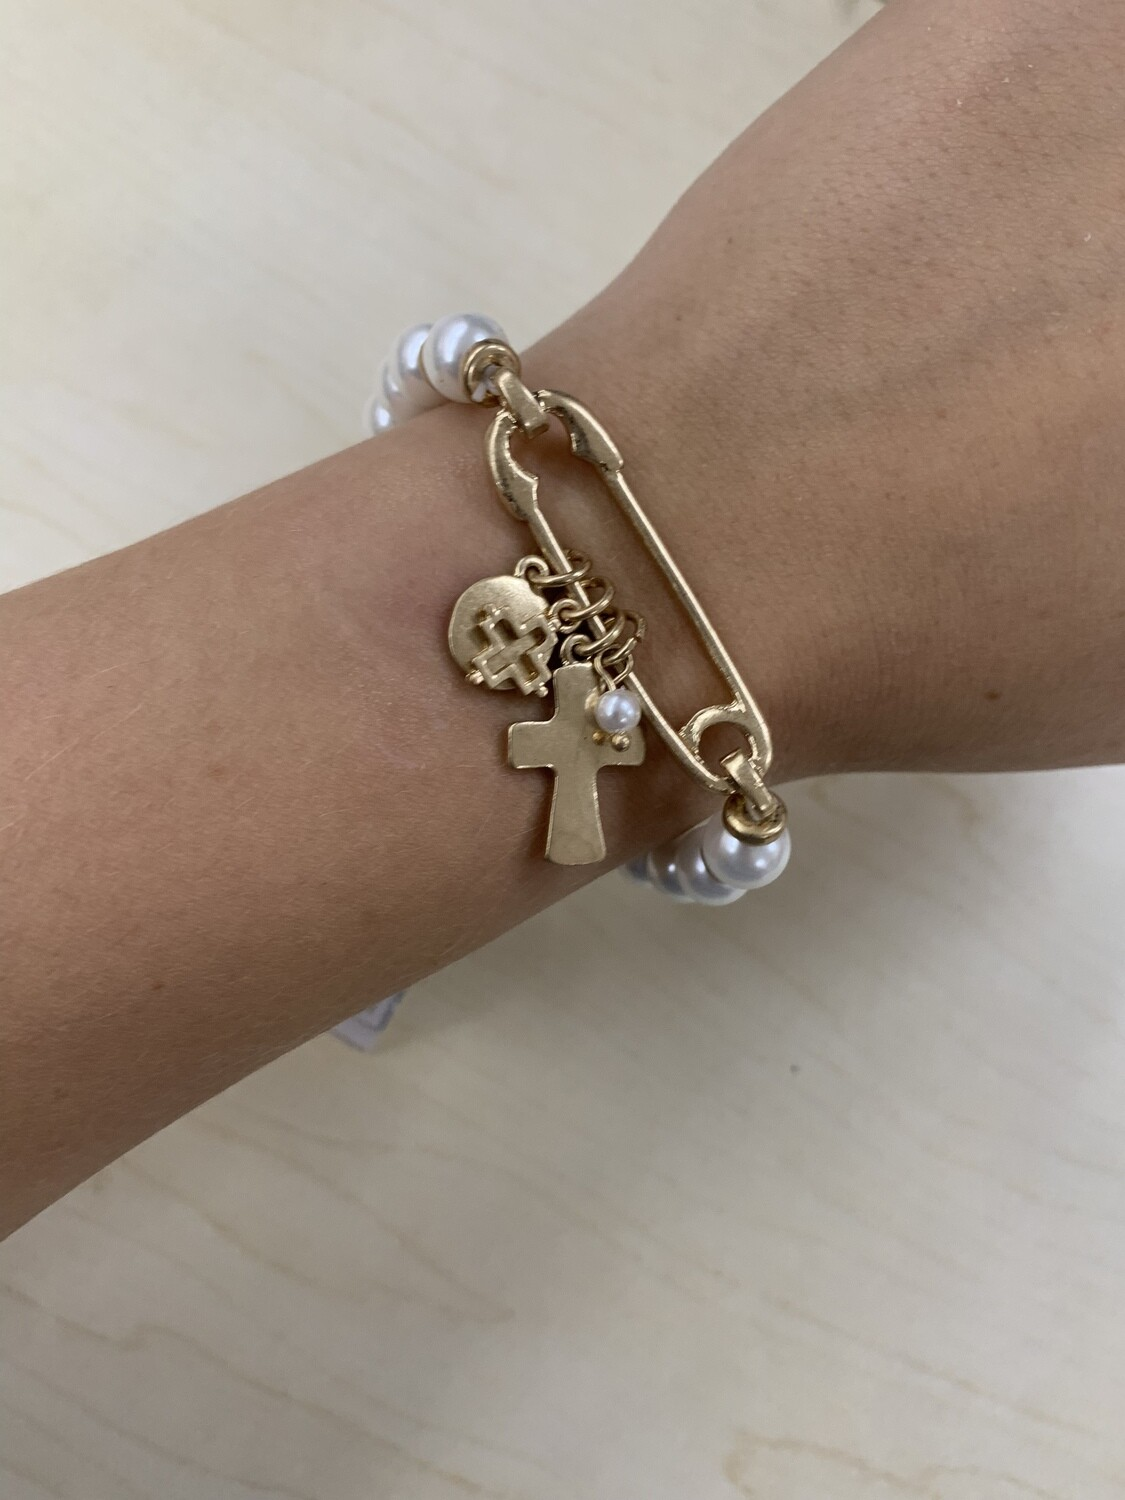 Beaded Safety Pin Bracelets With Charms